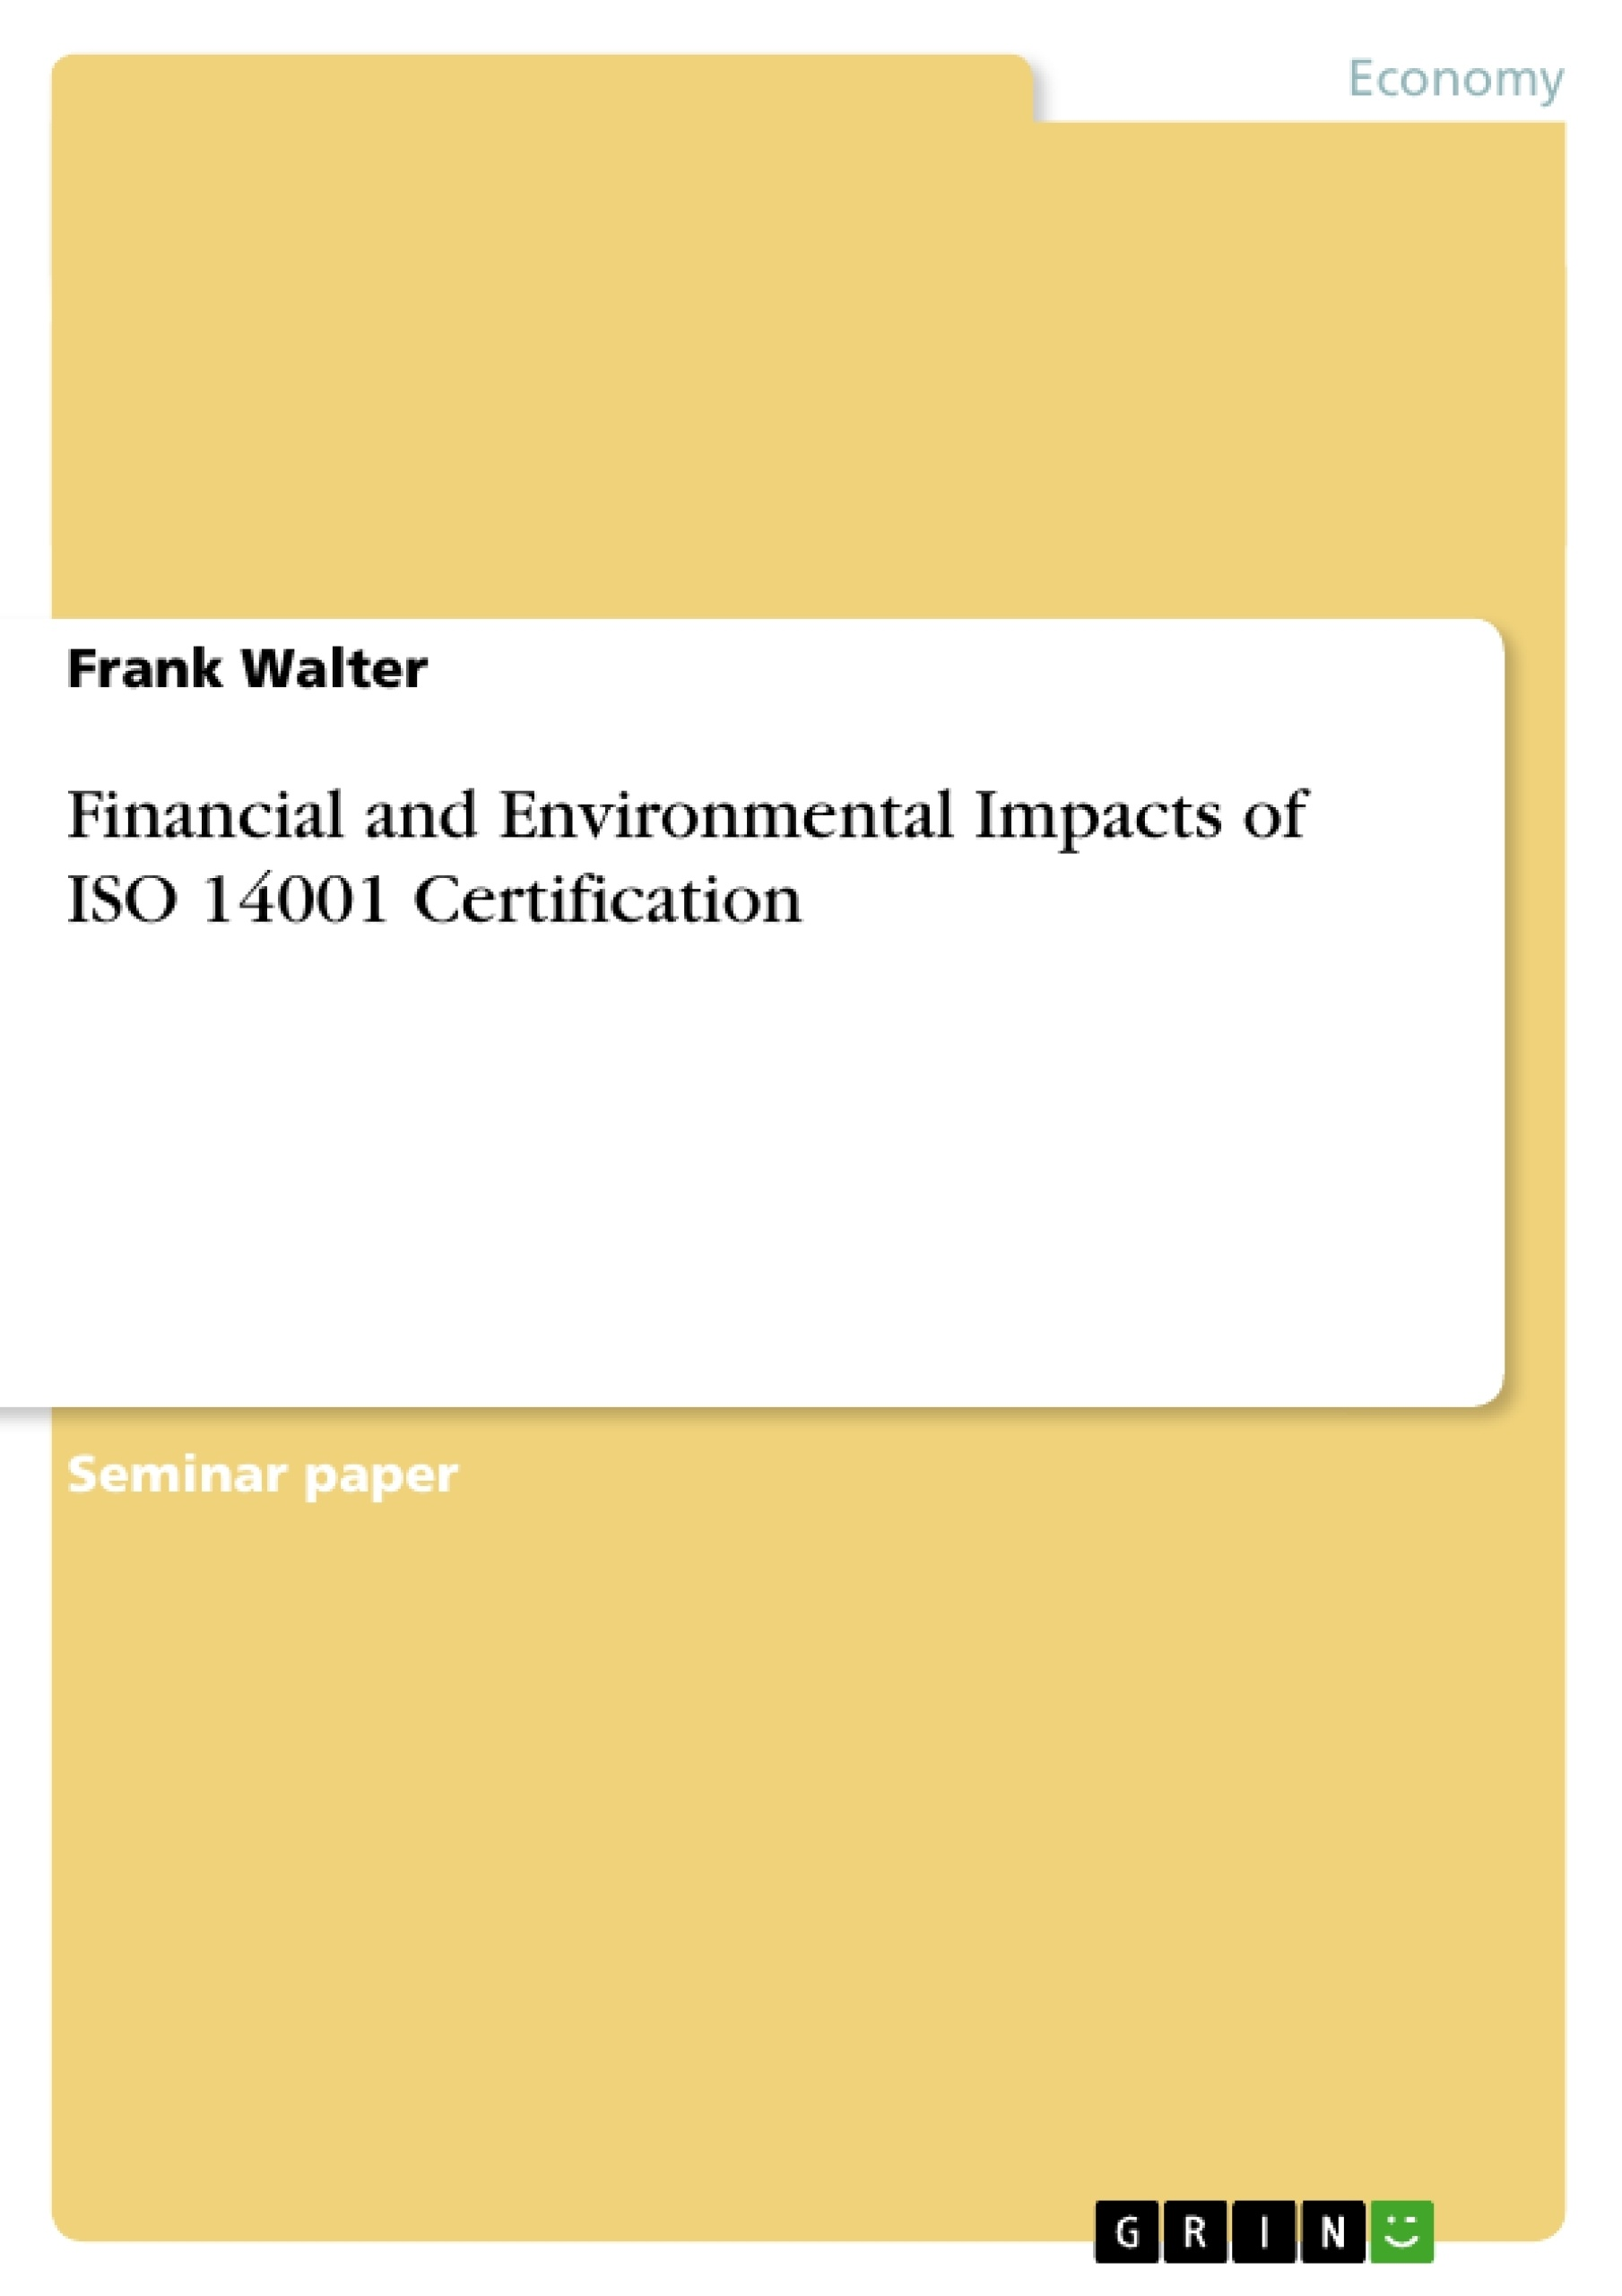 Title: Financial and Environmental Impacts of ISO 14001 Certification